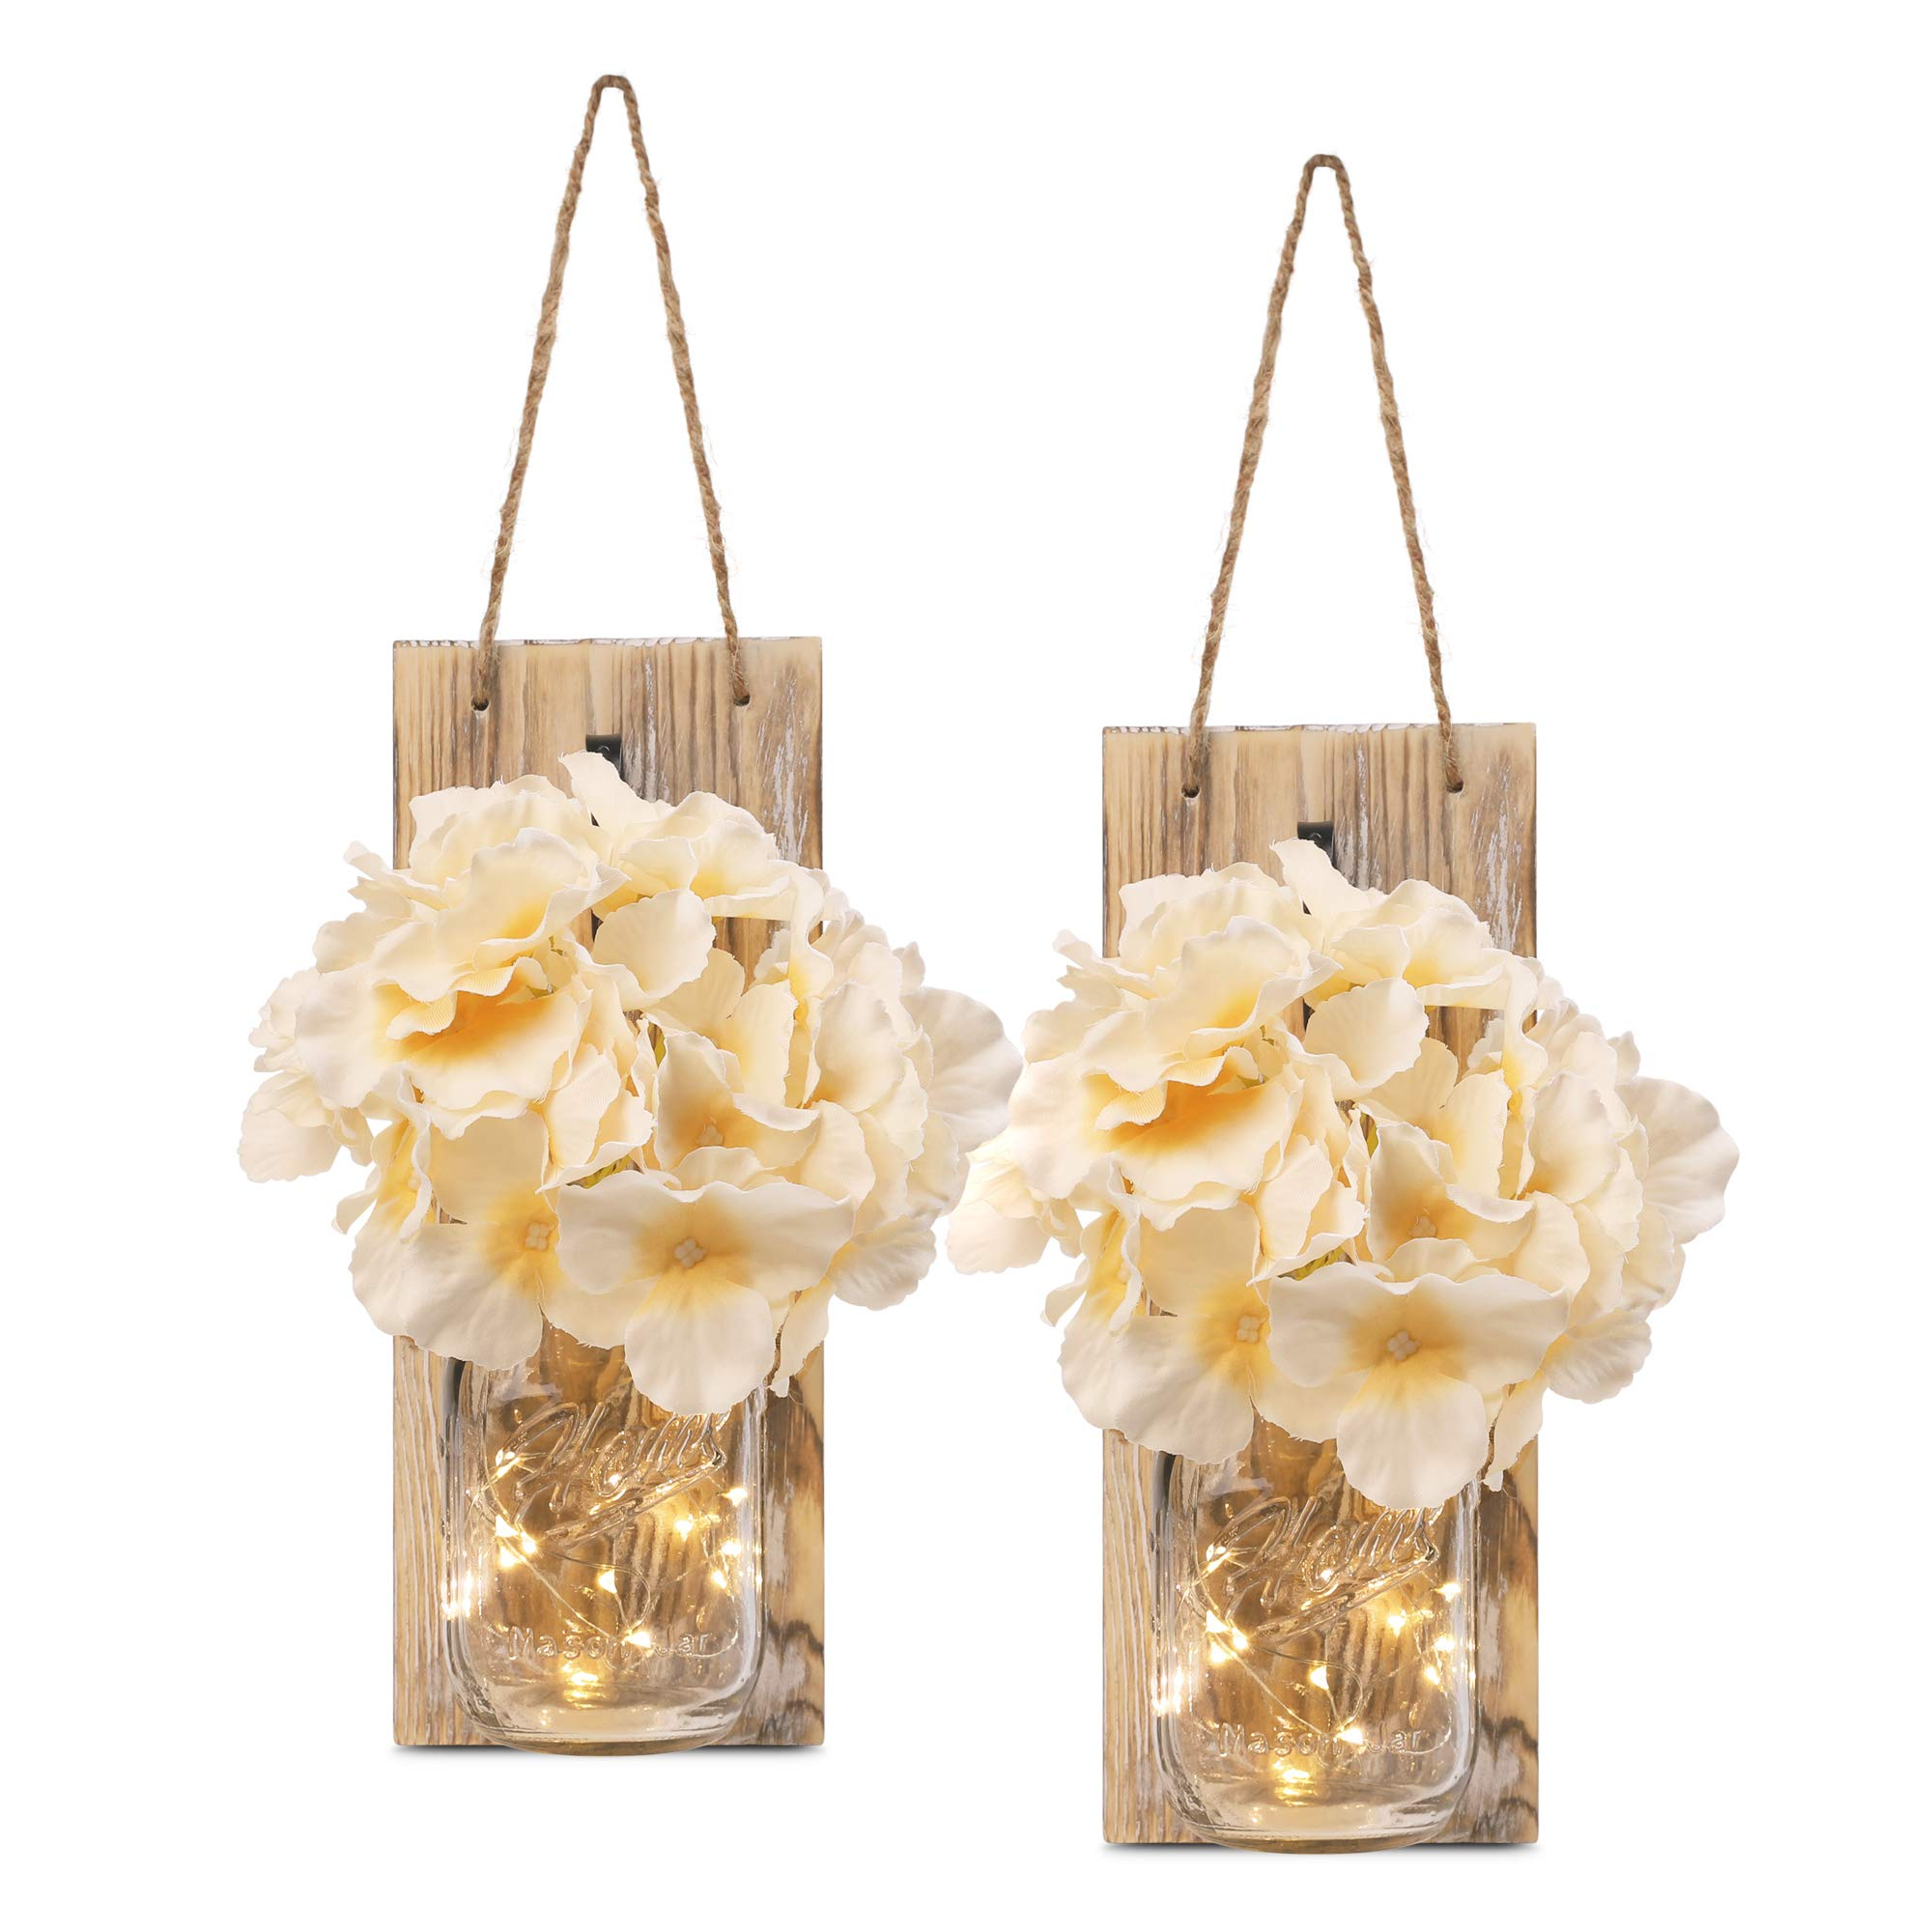 HOMKO Decorative Mason Jar Decorations with 6-Hour Timer LED Fairy Lights and Flowers – Rustic Home Decor (Set of 2)